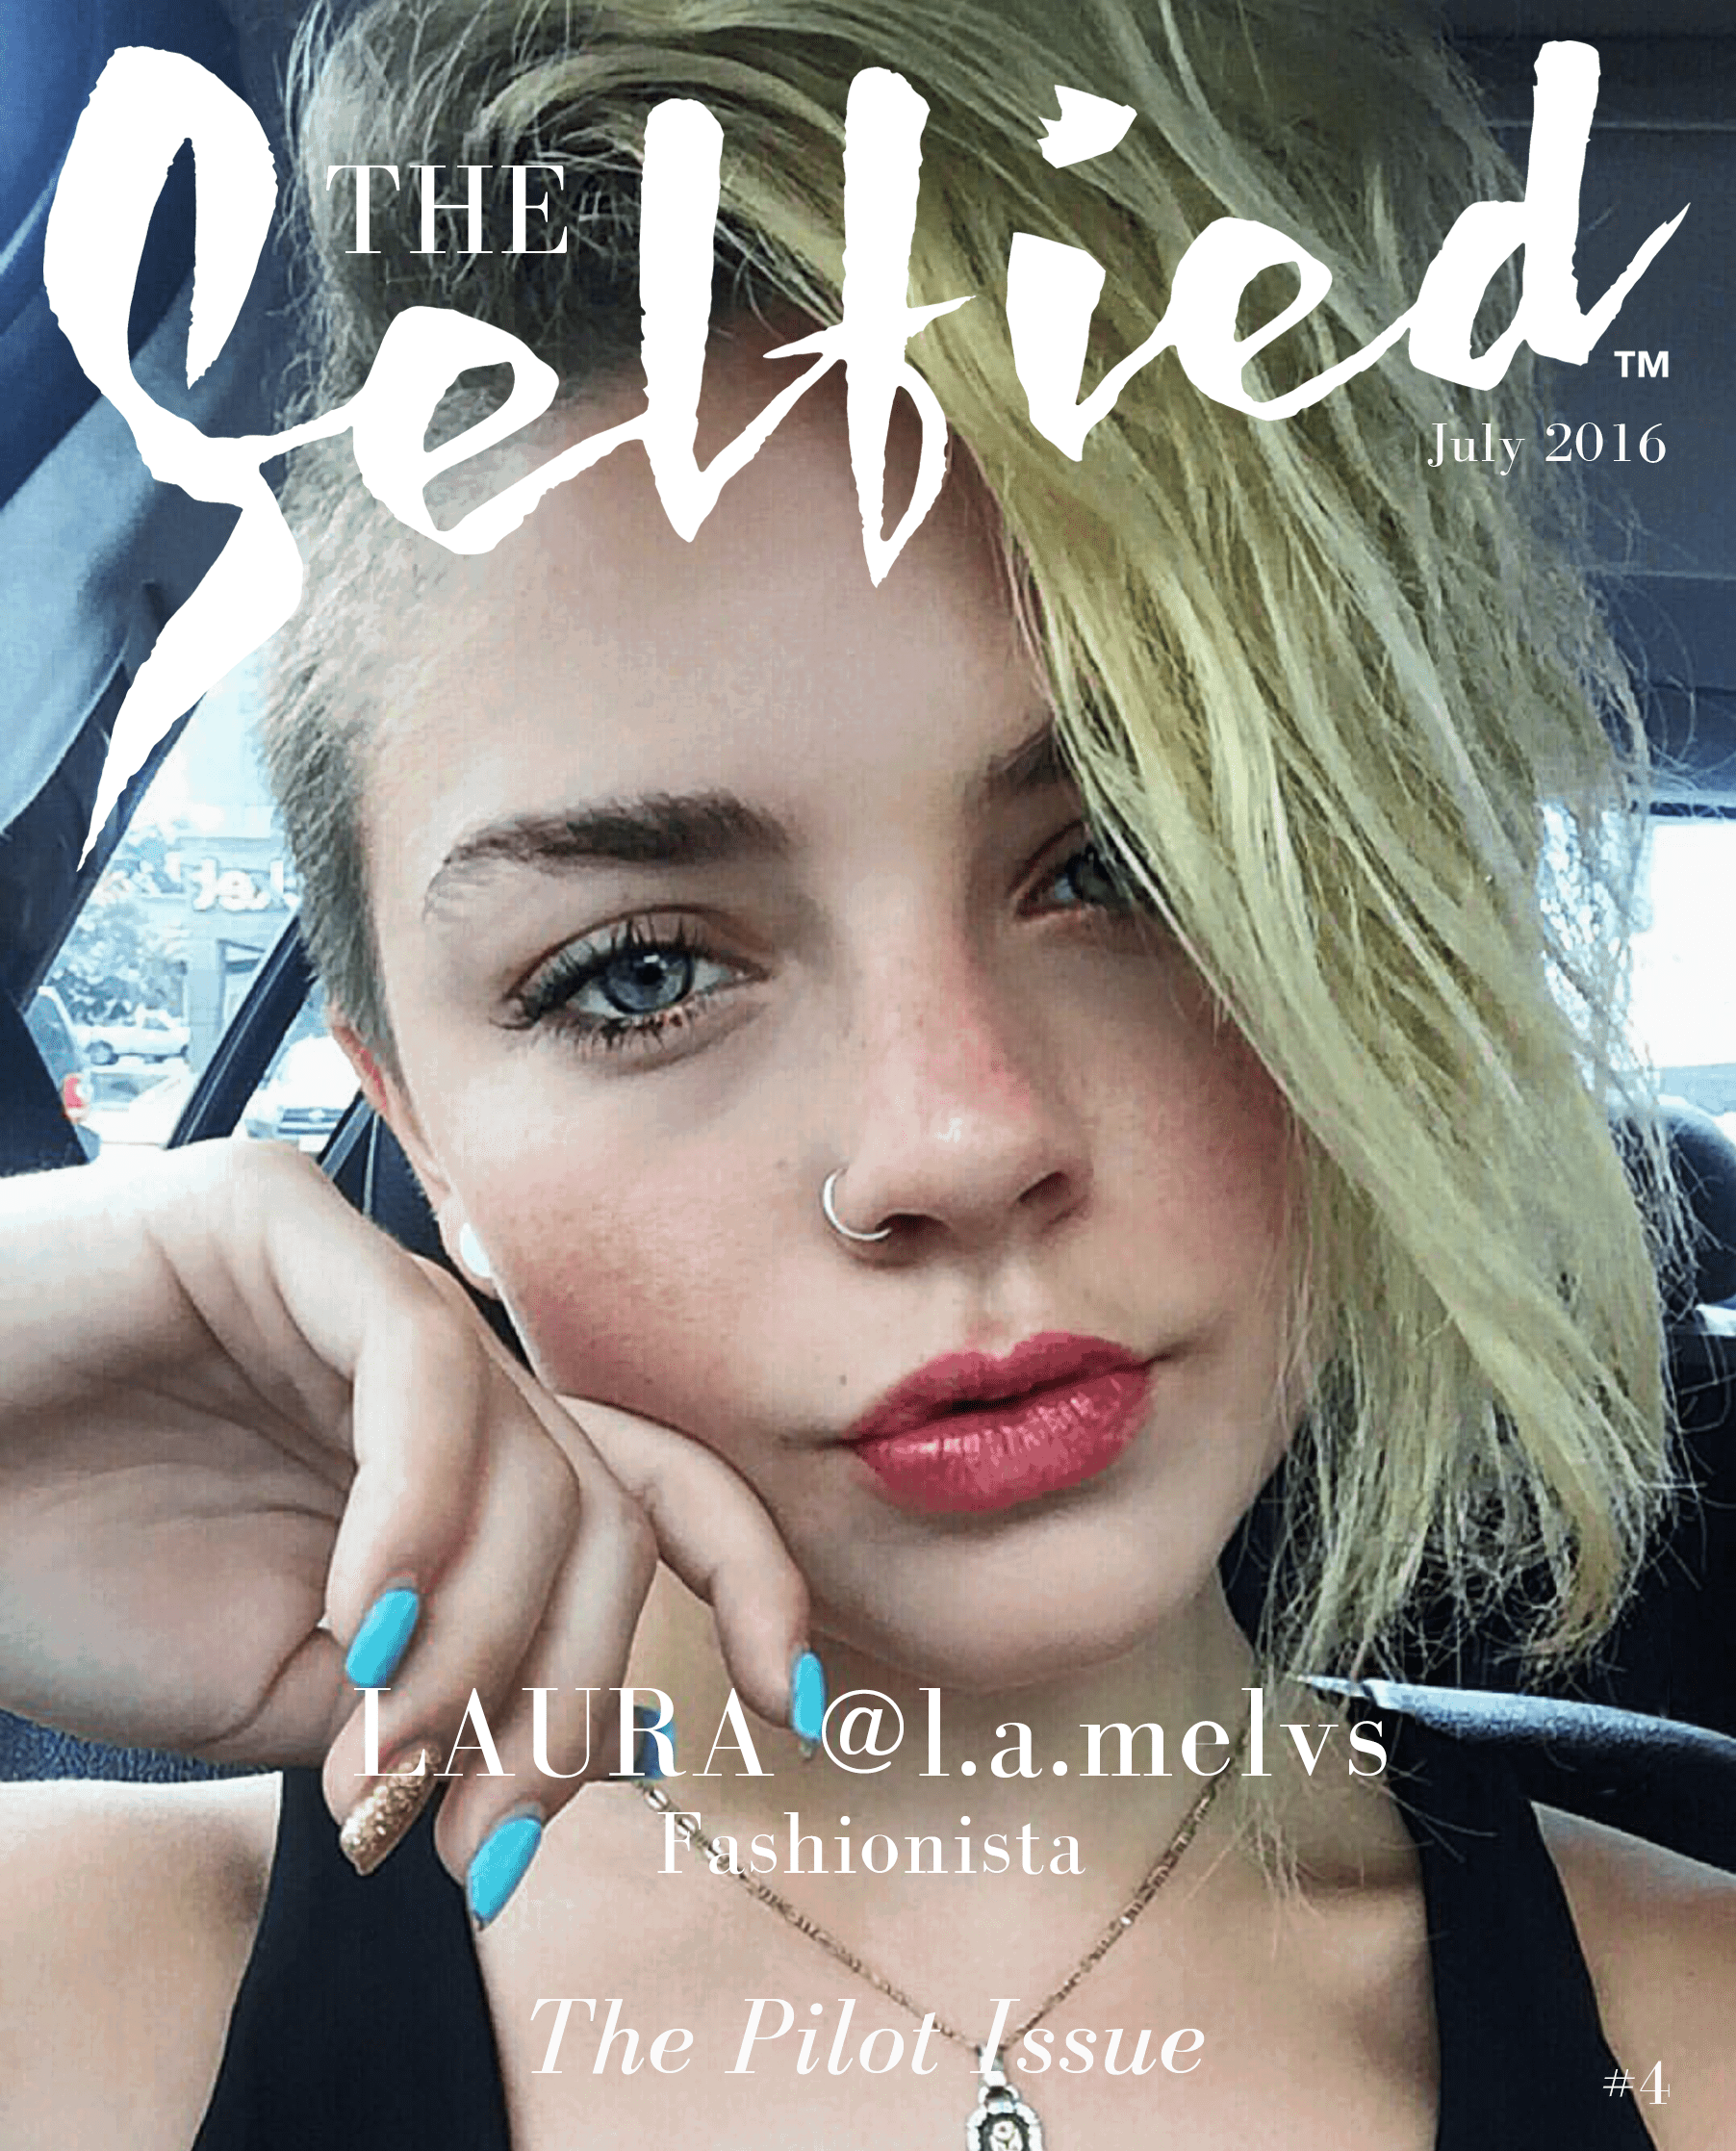 fashionista selfie on the cover of The Selfied magazine with blue nail polish